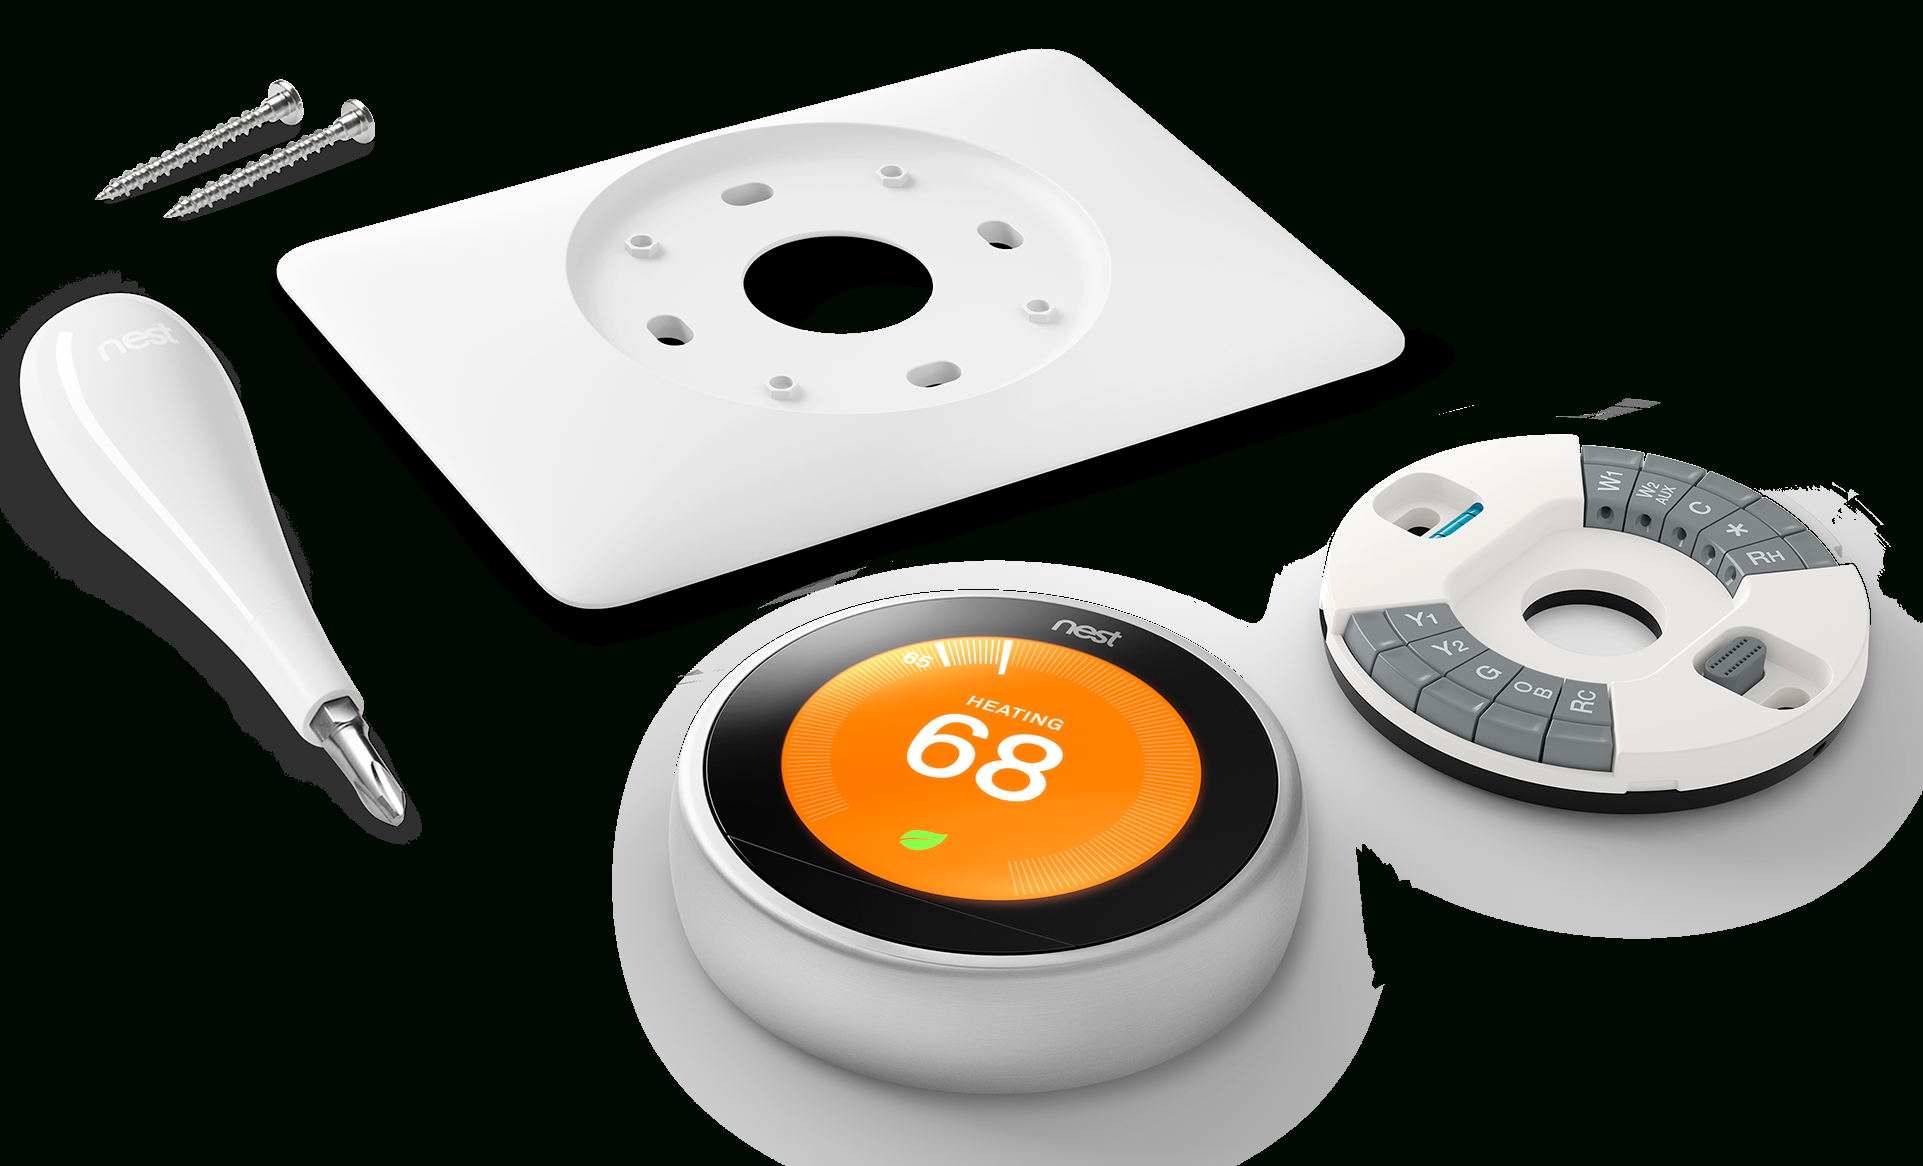 How To Install Your Nest Thermostat - Nest Version 3 Wiring Diagram